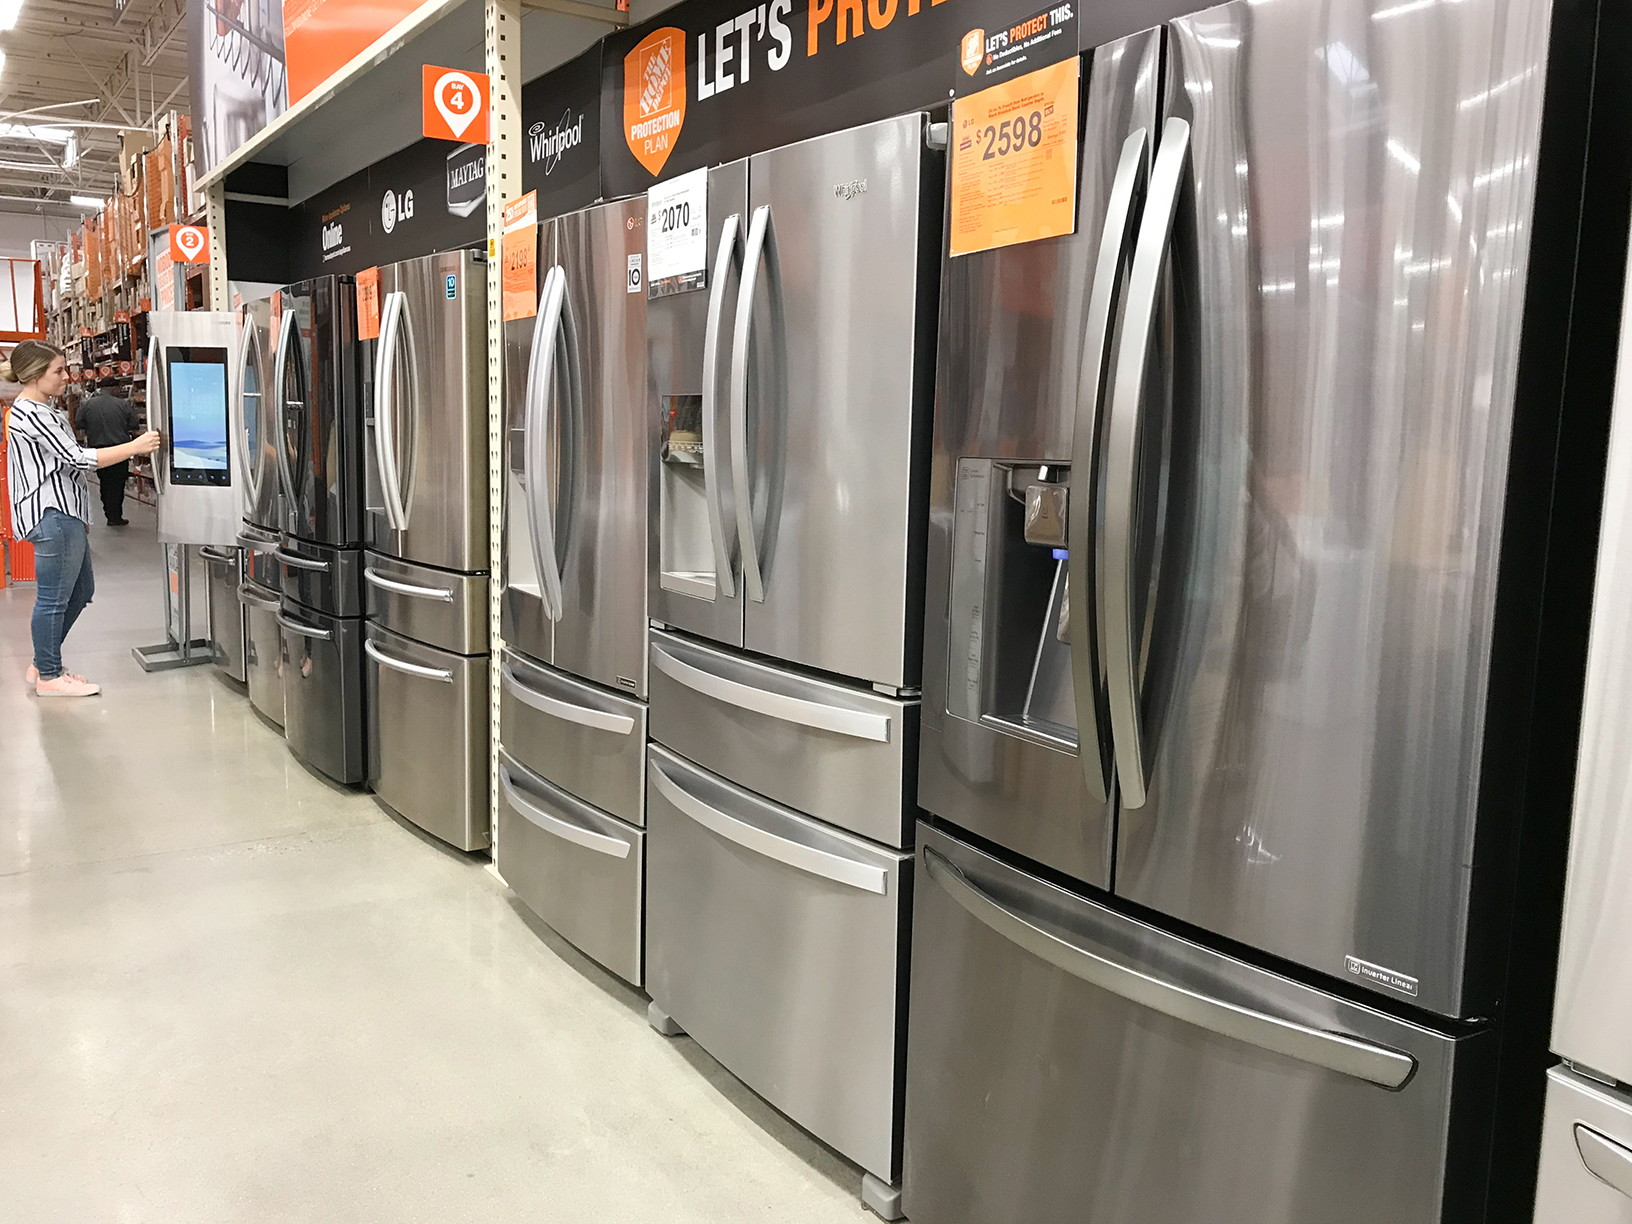 Early Black Friday at Home Depot - Save on Large Kitchen ...